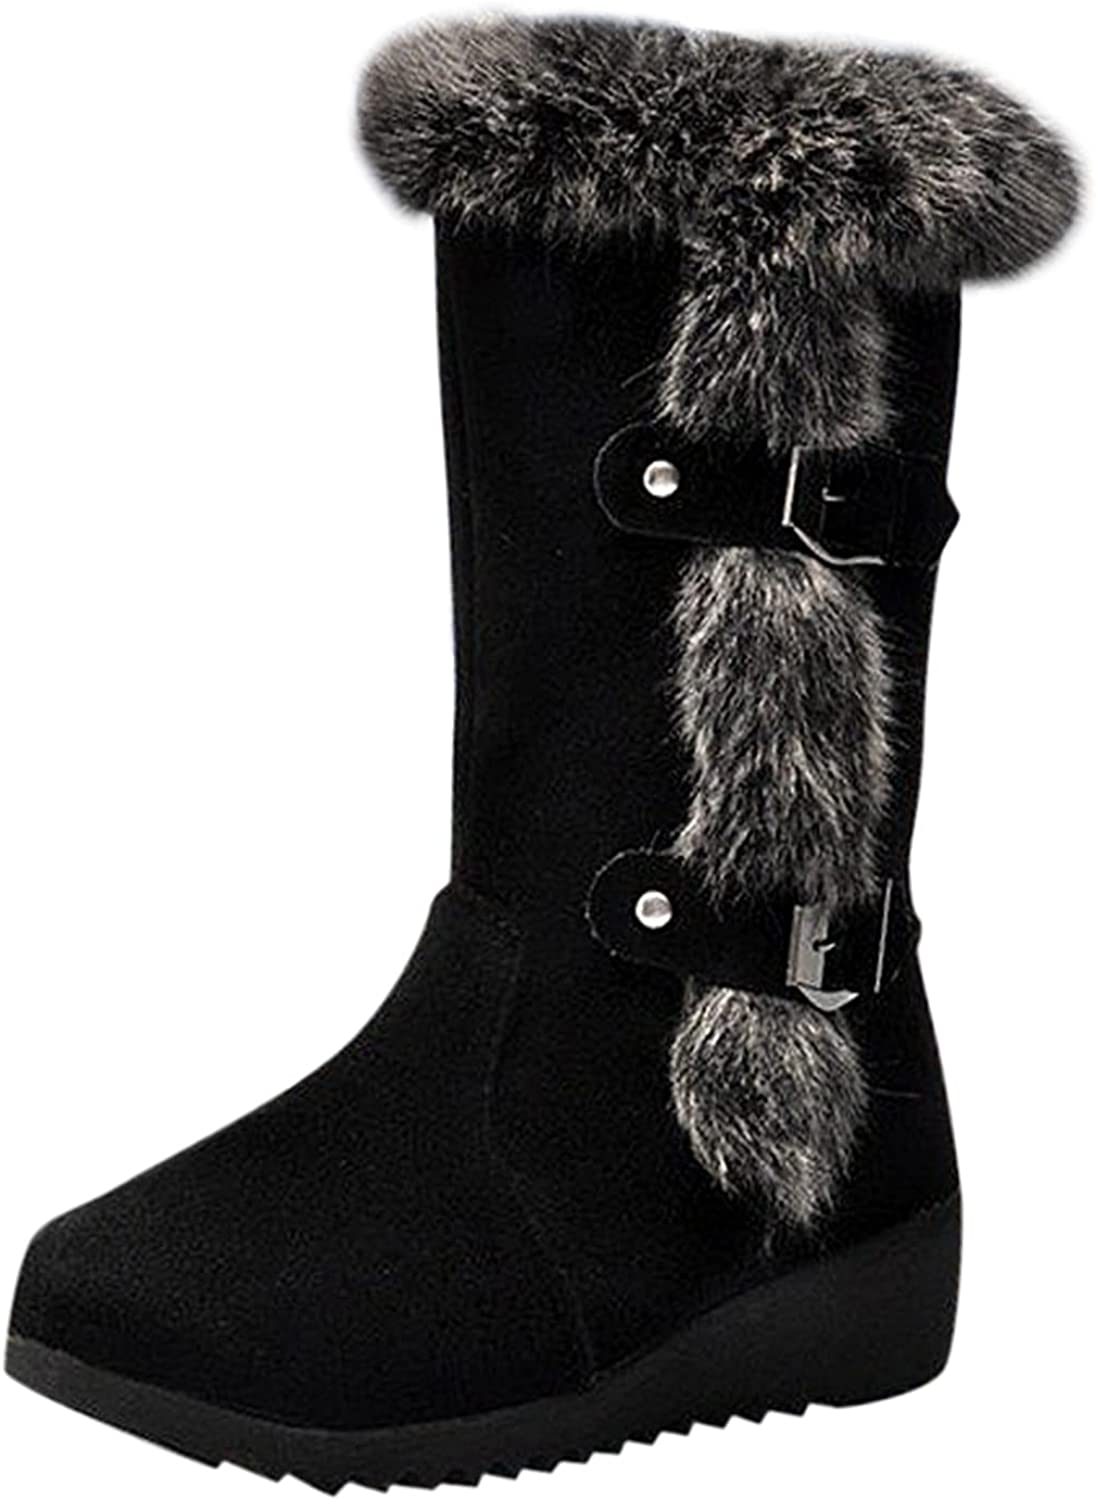 Boots for Women Fashion Suede Winter Plus Cotton Fleece 5 ☆ Challenge the lowest price of Japan popular Warm Boo